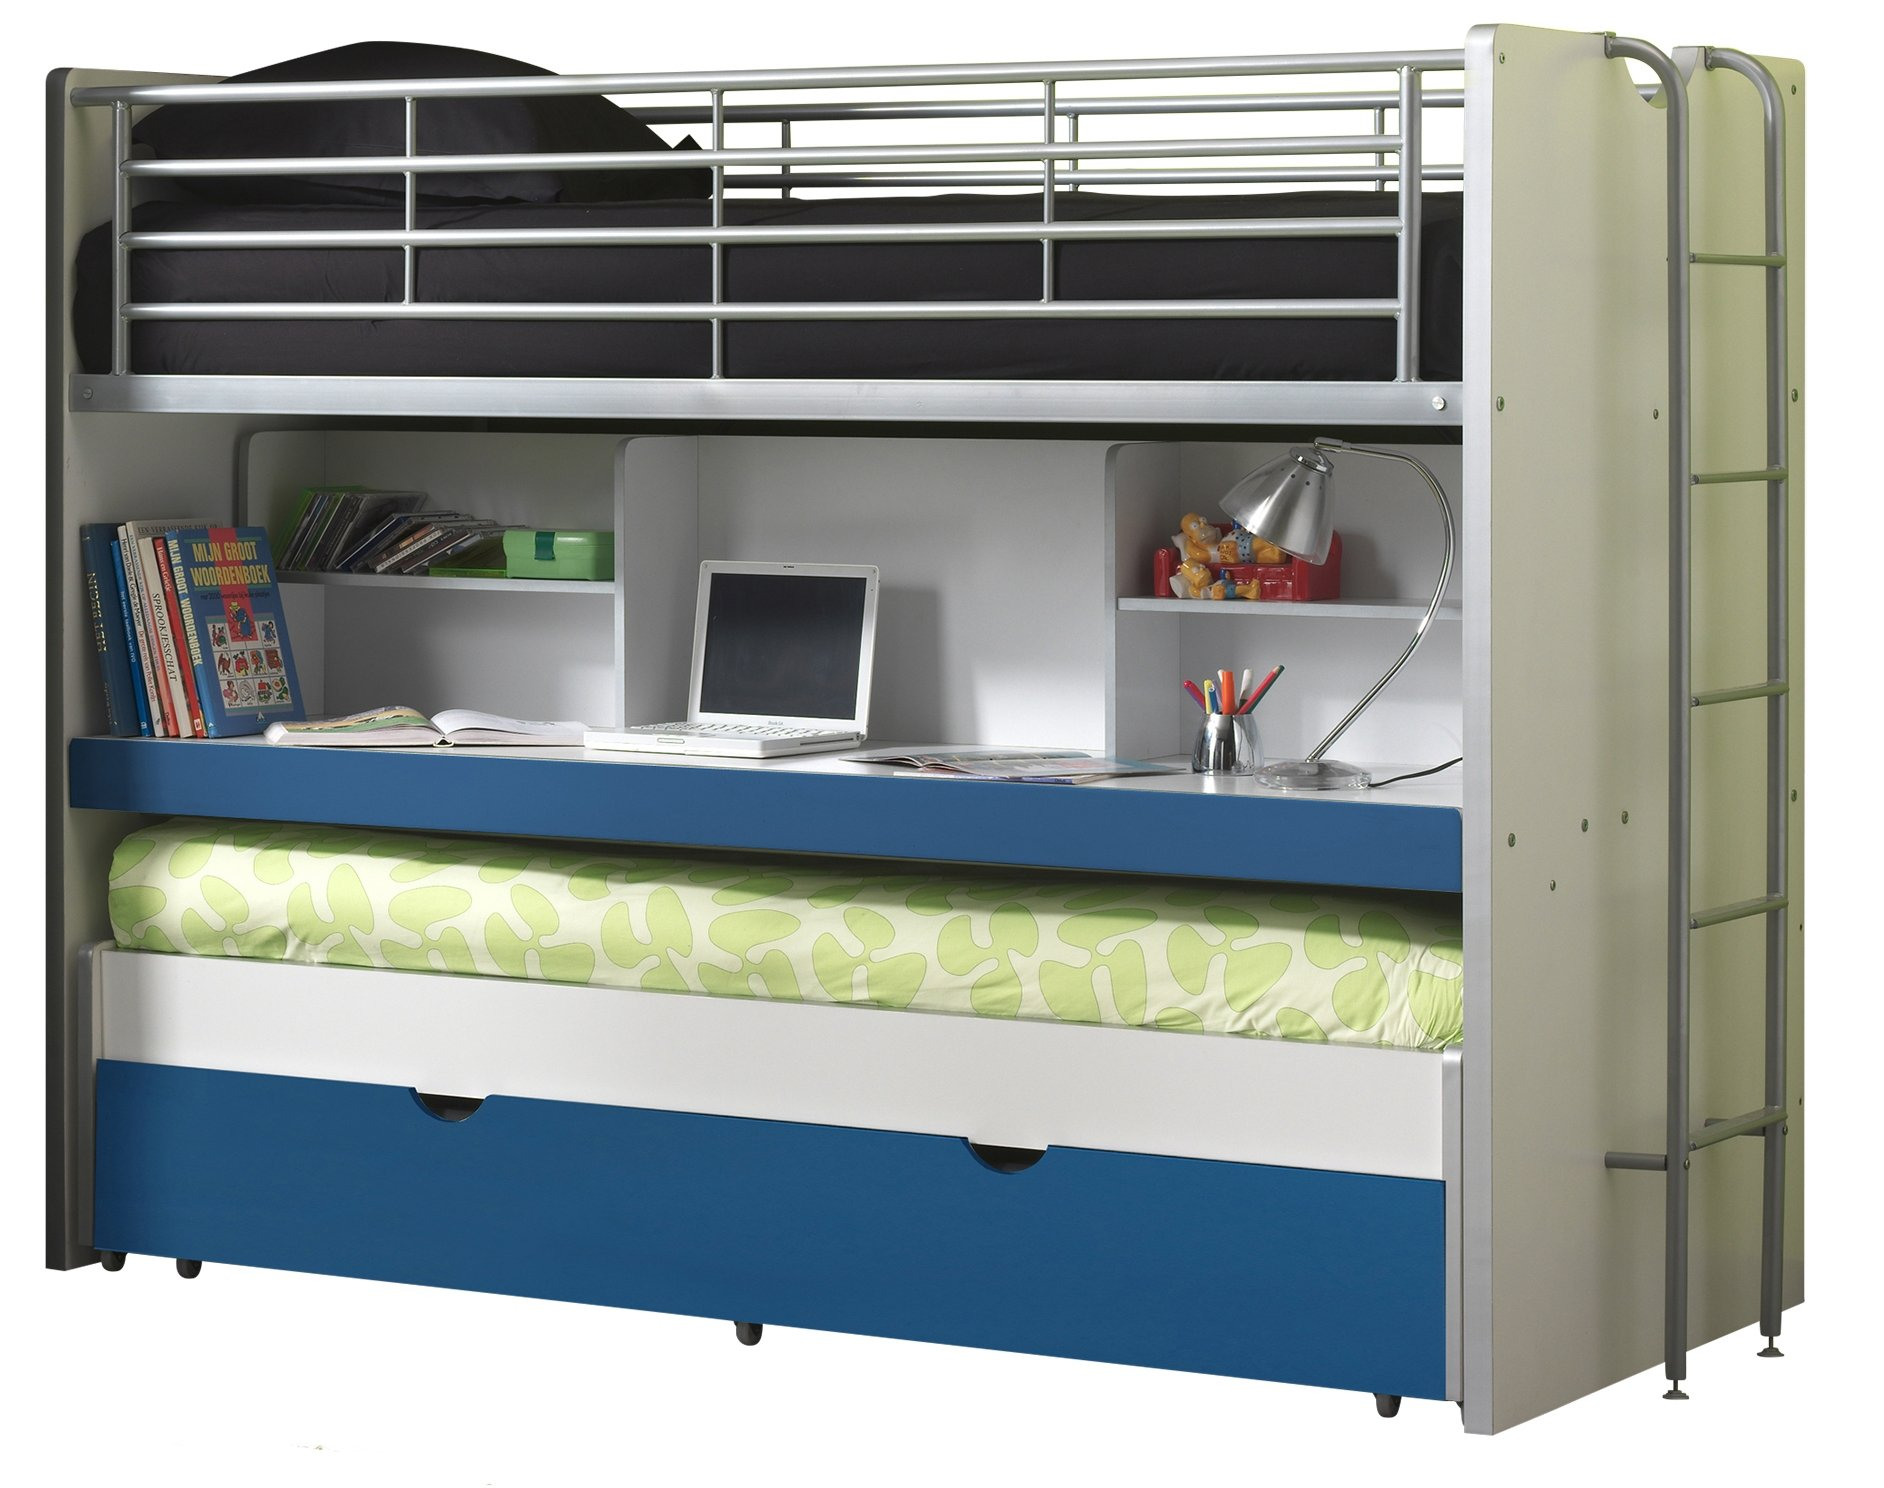 Vipack BOHS8007Bunk Beds Bonny, 207x 116x 98cm, Mattress 90x 200cm, 07, White/Blue Vipack Cabin bed with 2Sleeping surfaces 90x 200cm and 1drawer. Extendable Work Surface. Chipboard White MDF fronts and varnish with fall protection 1